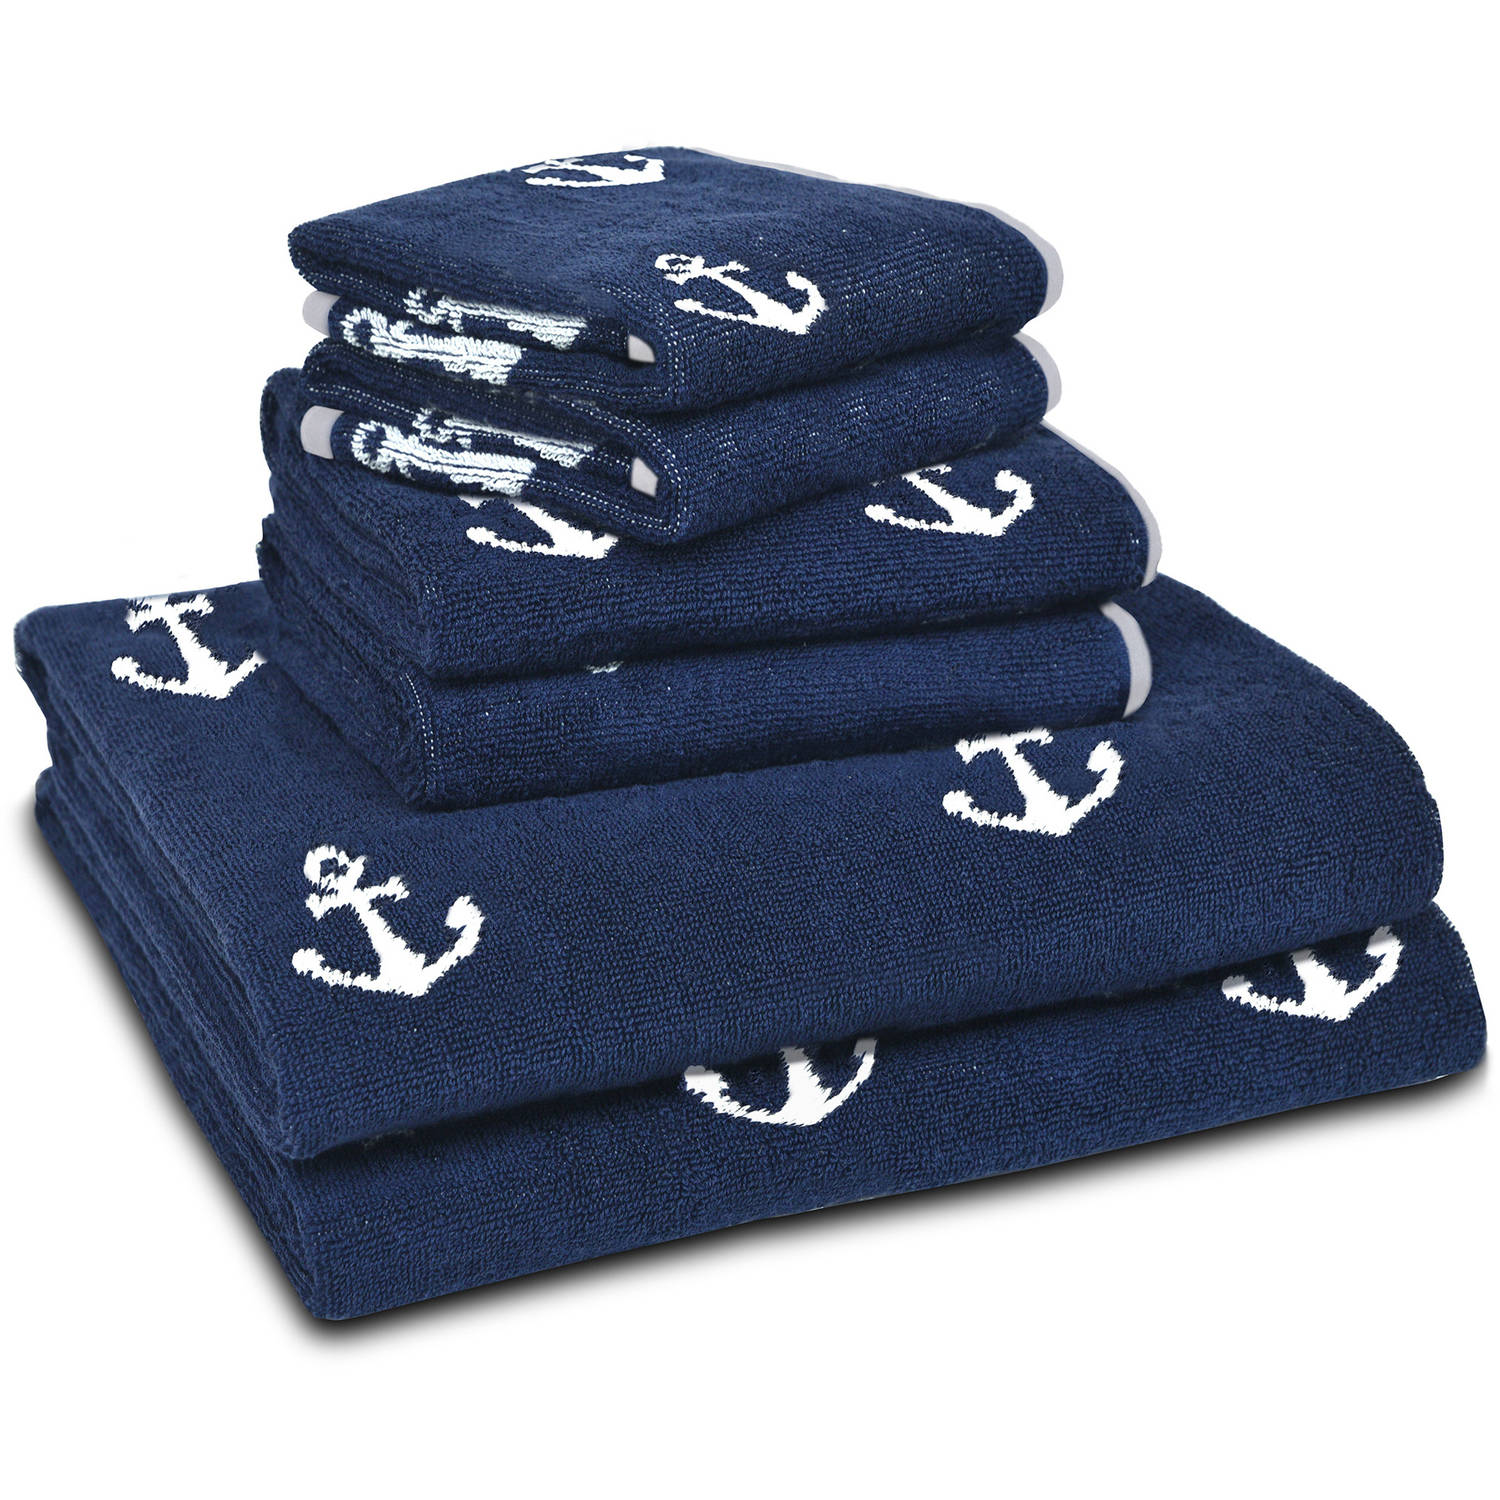 LaMont Home Anchors Towel Collection